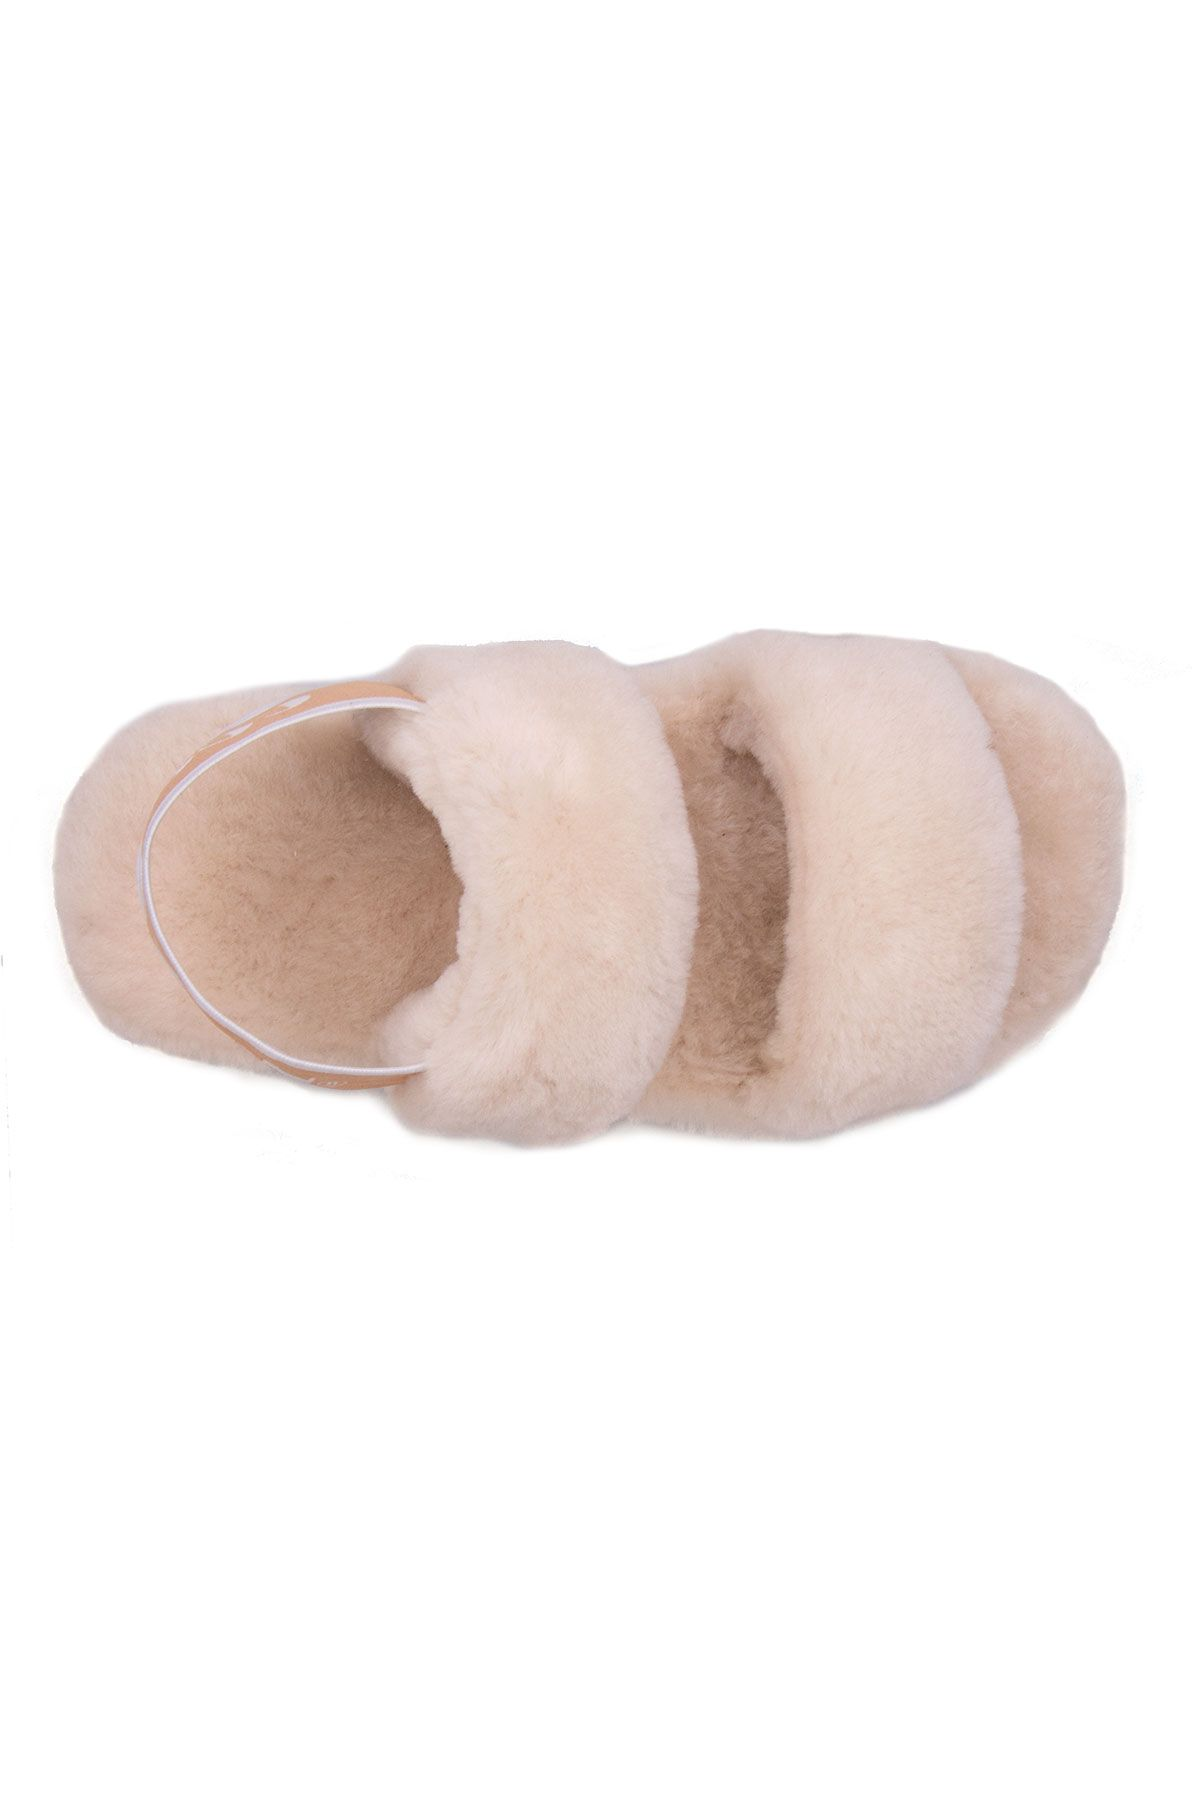 Cool Moon Genuine Sheepskin Women's Slippers 213001 Beige